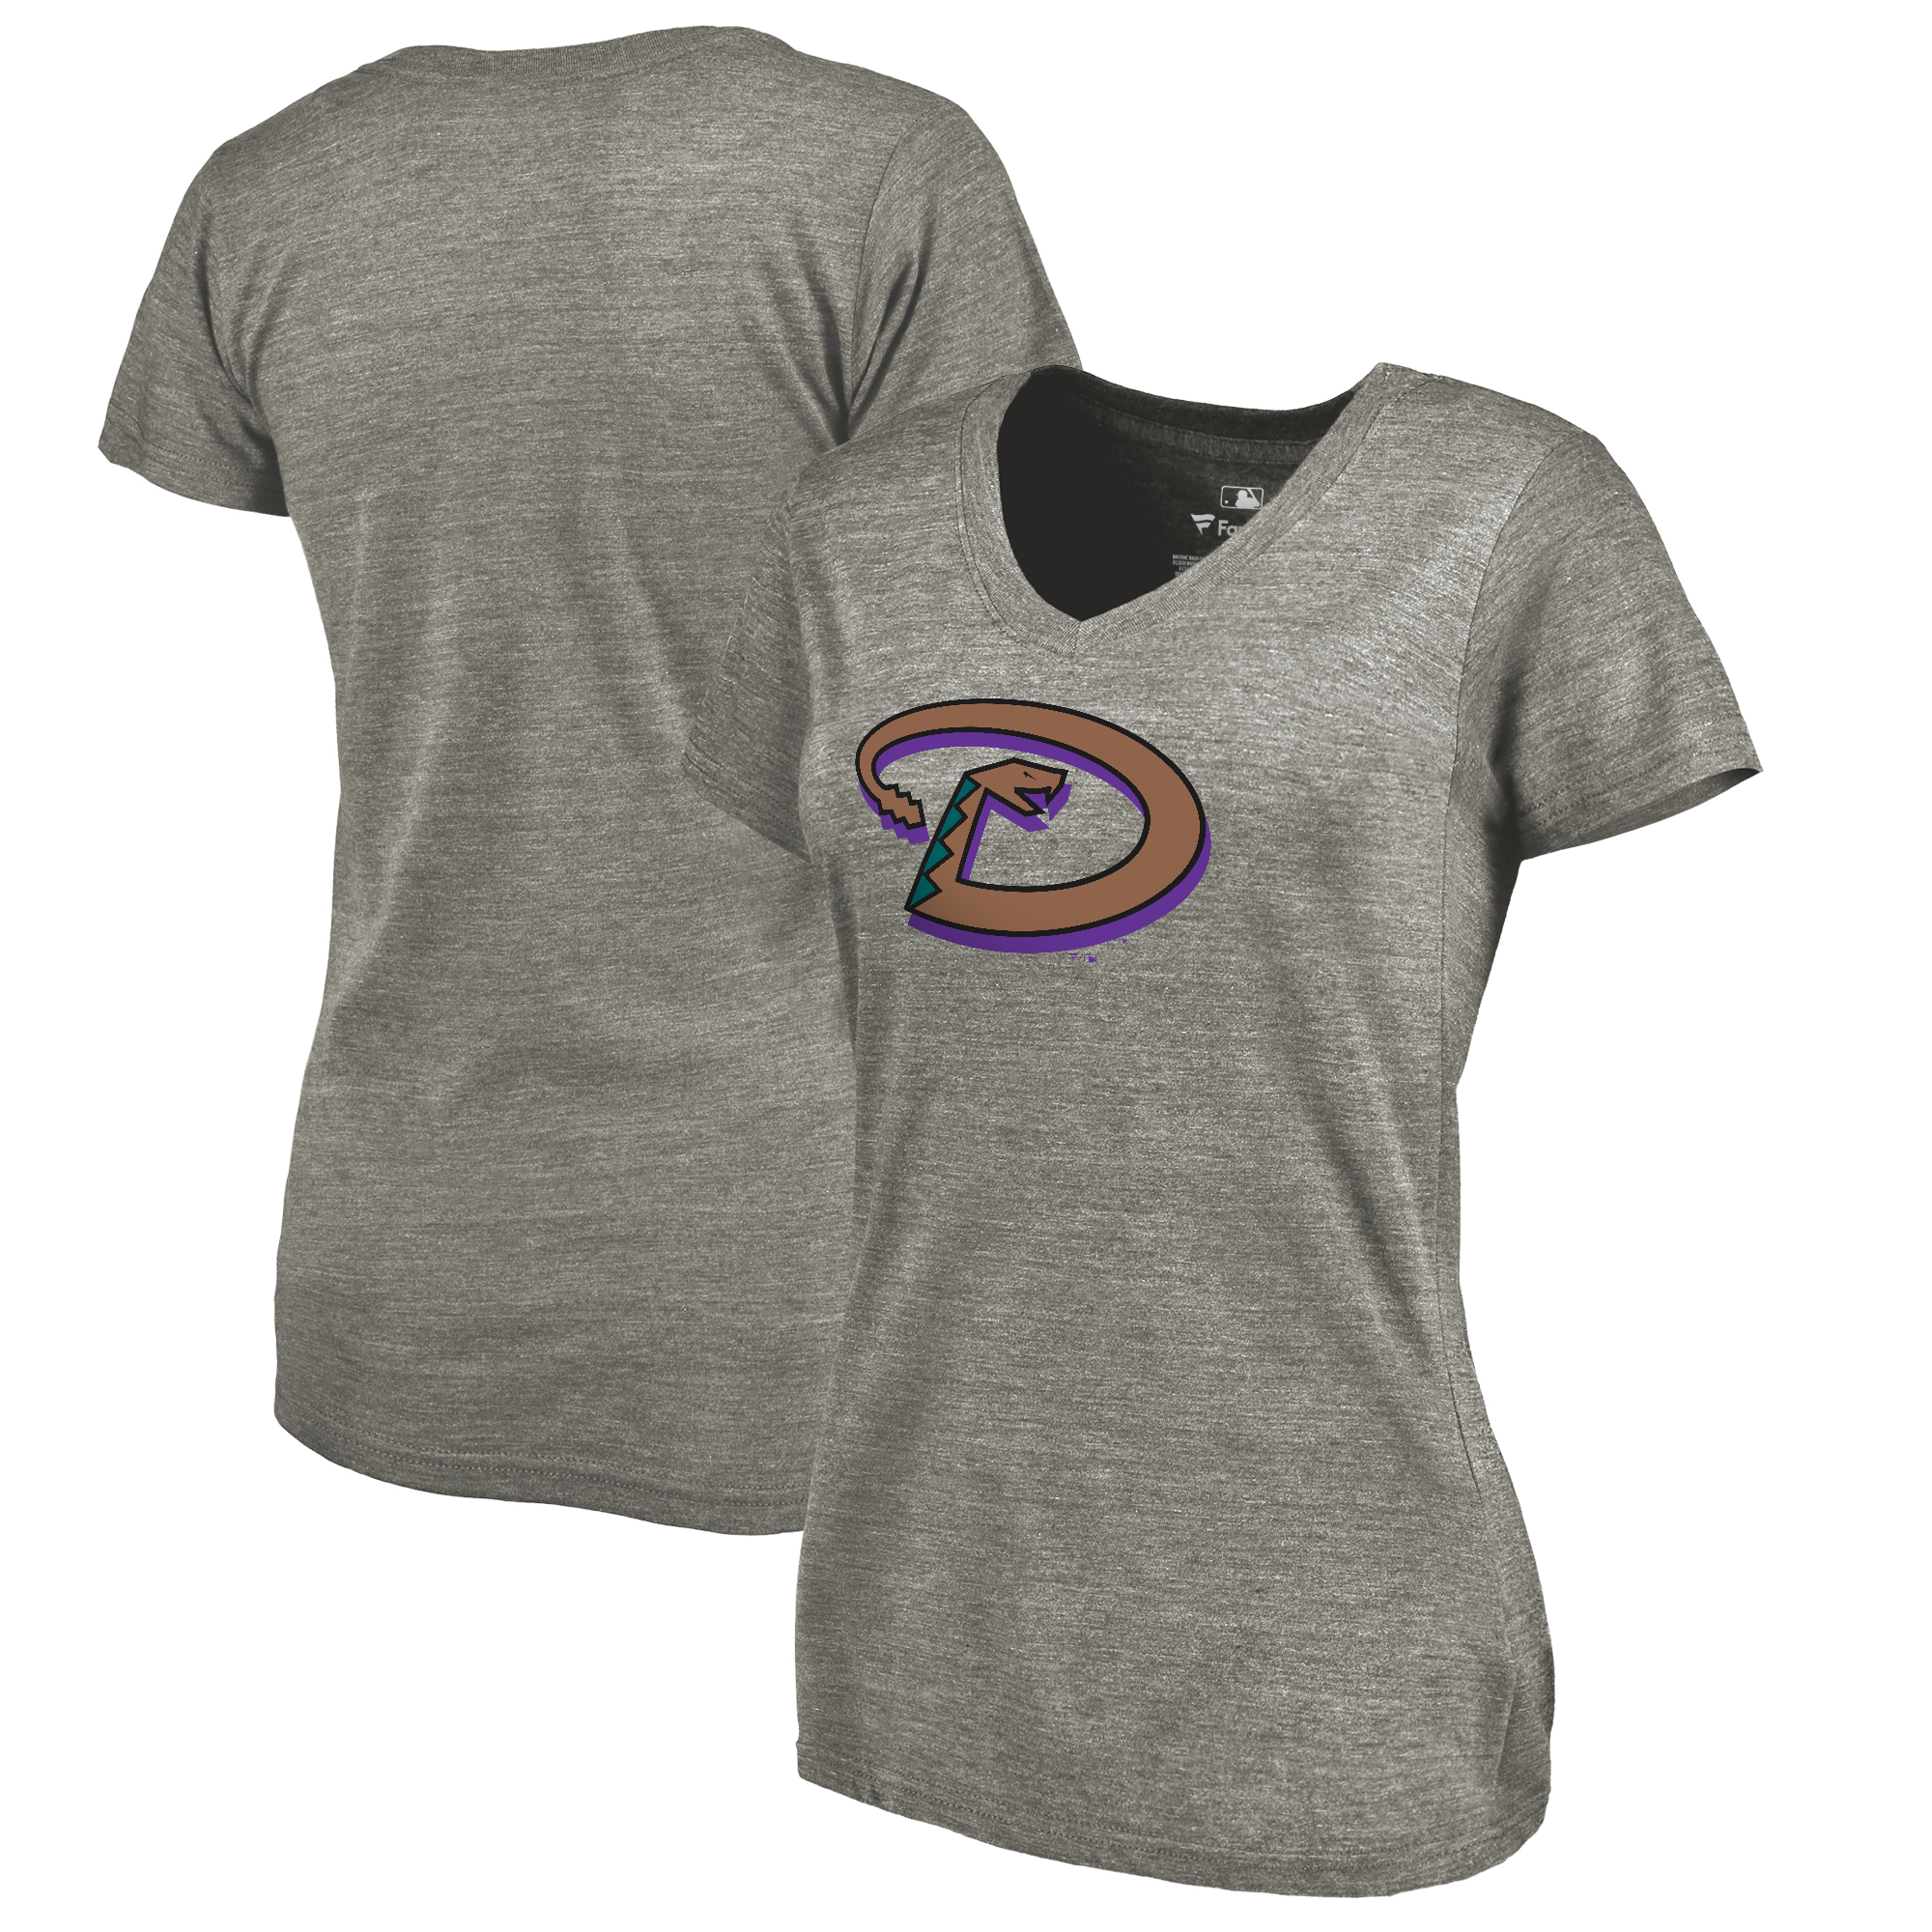 Arizona Diamondbacks Fanatics Branded Women's Cooperstown Collection Forbes Tri-Blend V-Neck T-Shirt - Ash